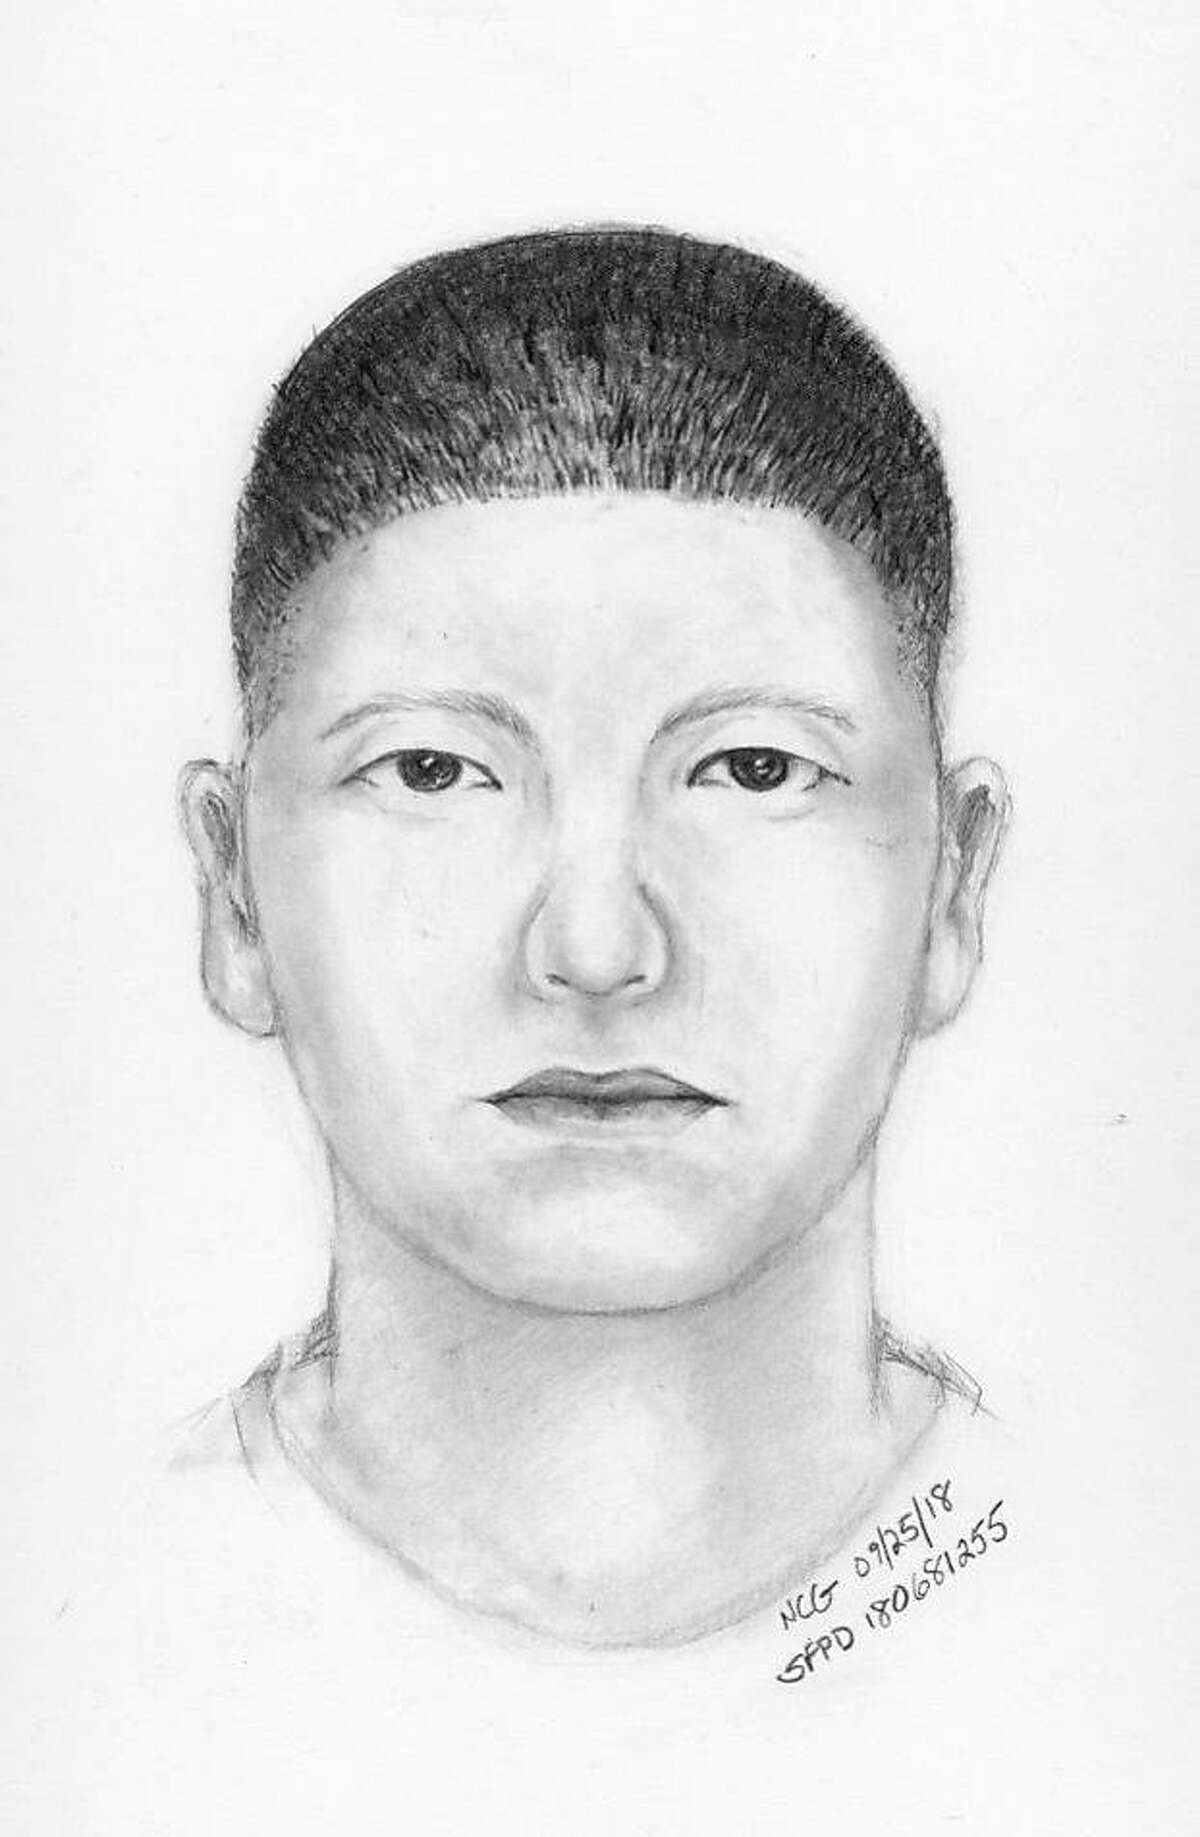 Police have released this sketch of the suspect.